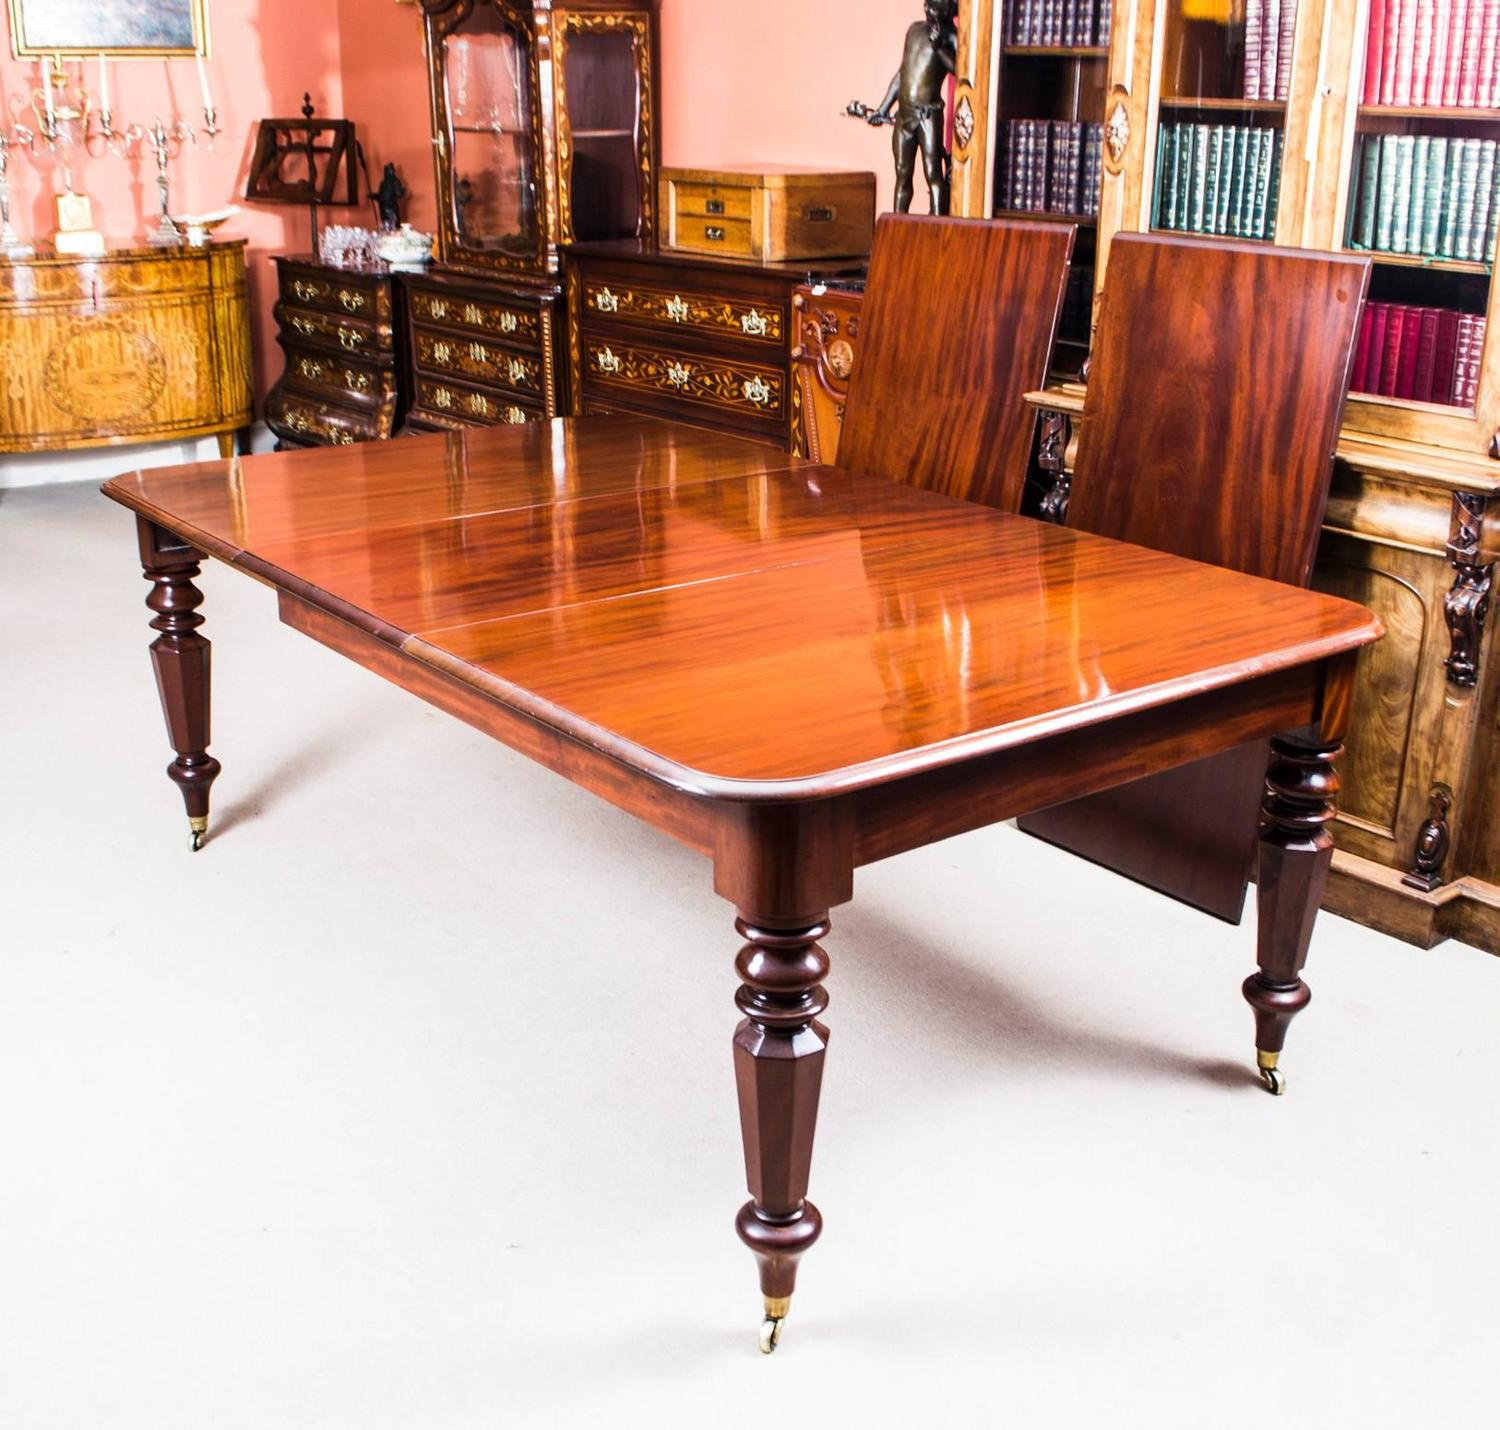 Dining Room Set For 12: Antique William IV Mahogany Extending Dining Table And 12